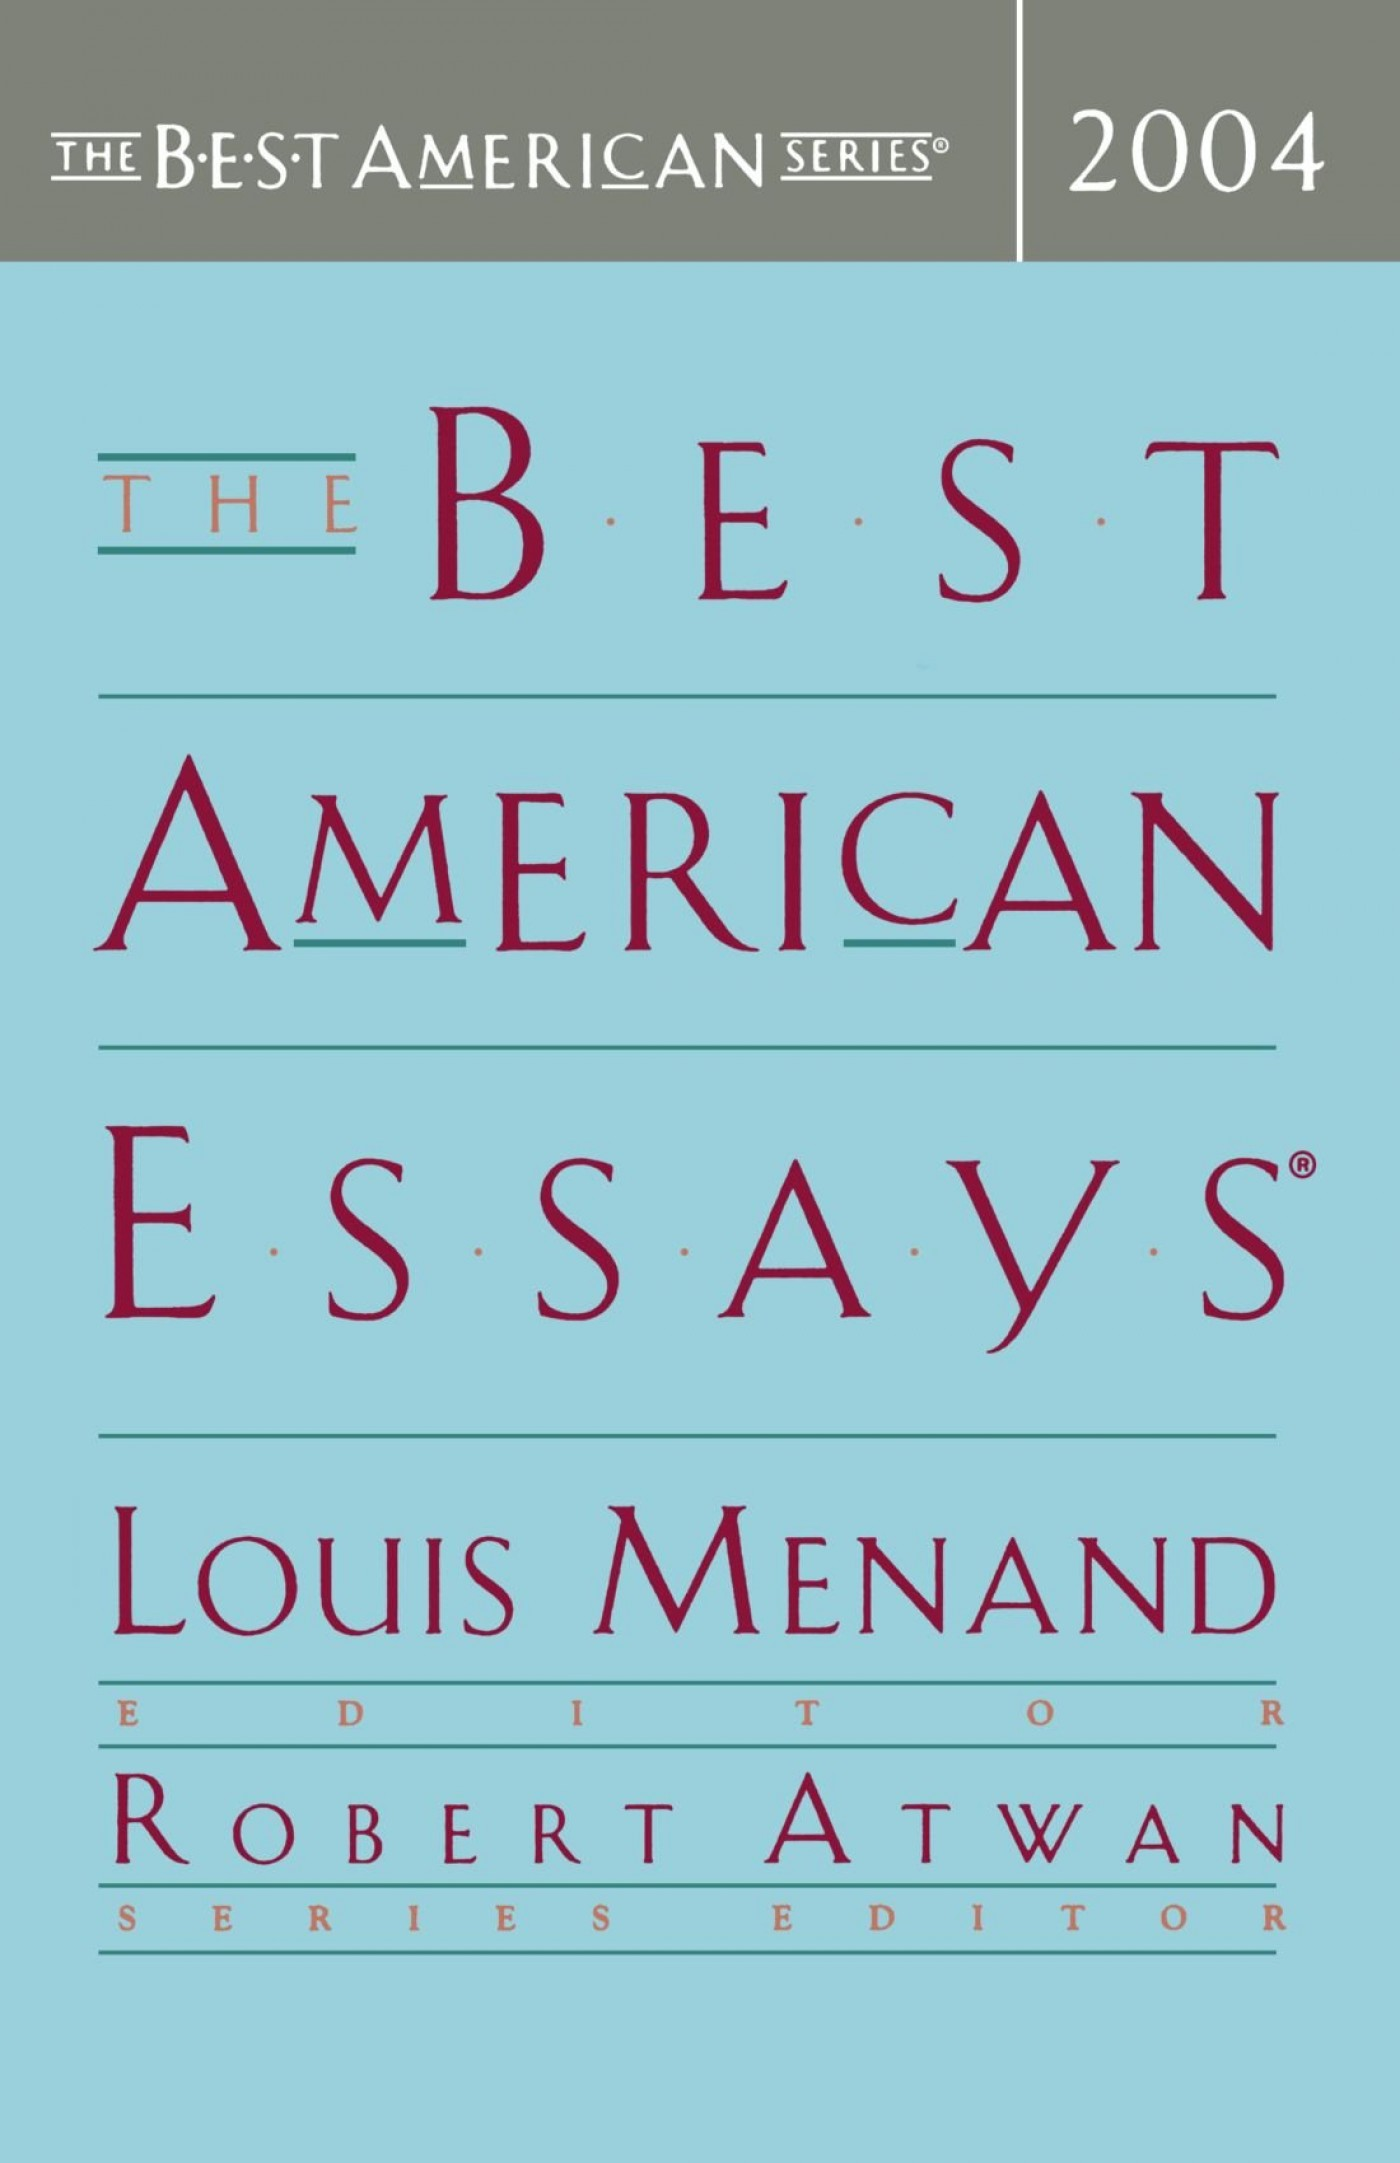 015 Essay Example The Best American Essays Wonderful 2018 Pdf 2017 Table Of Contents 2015 Free 1400